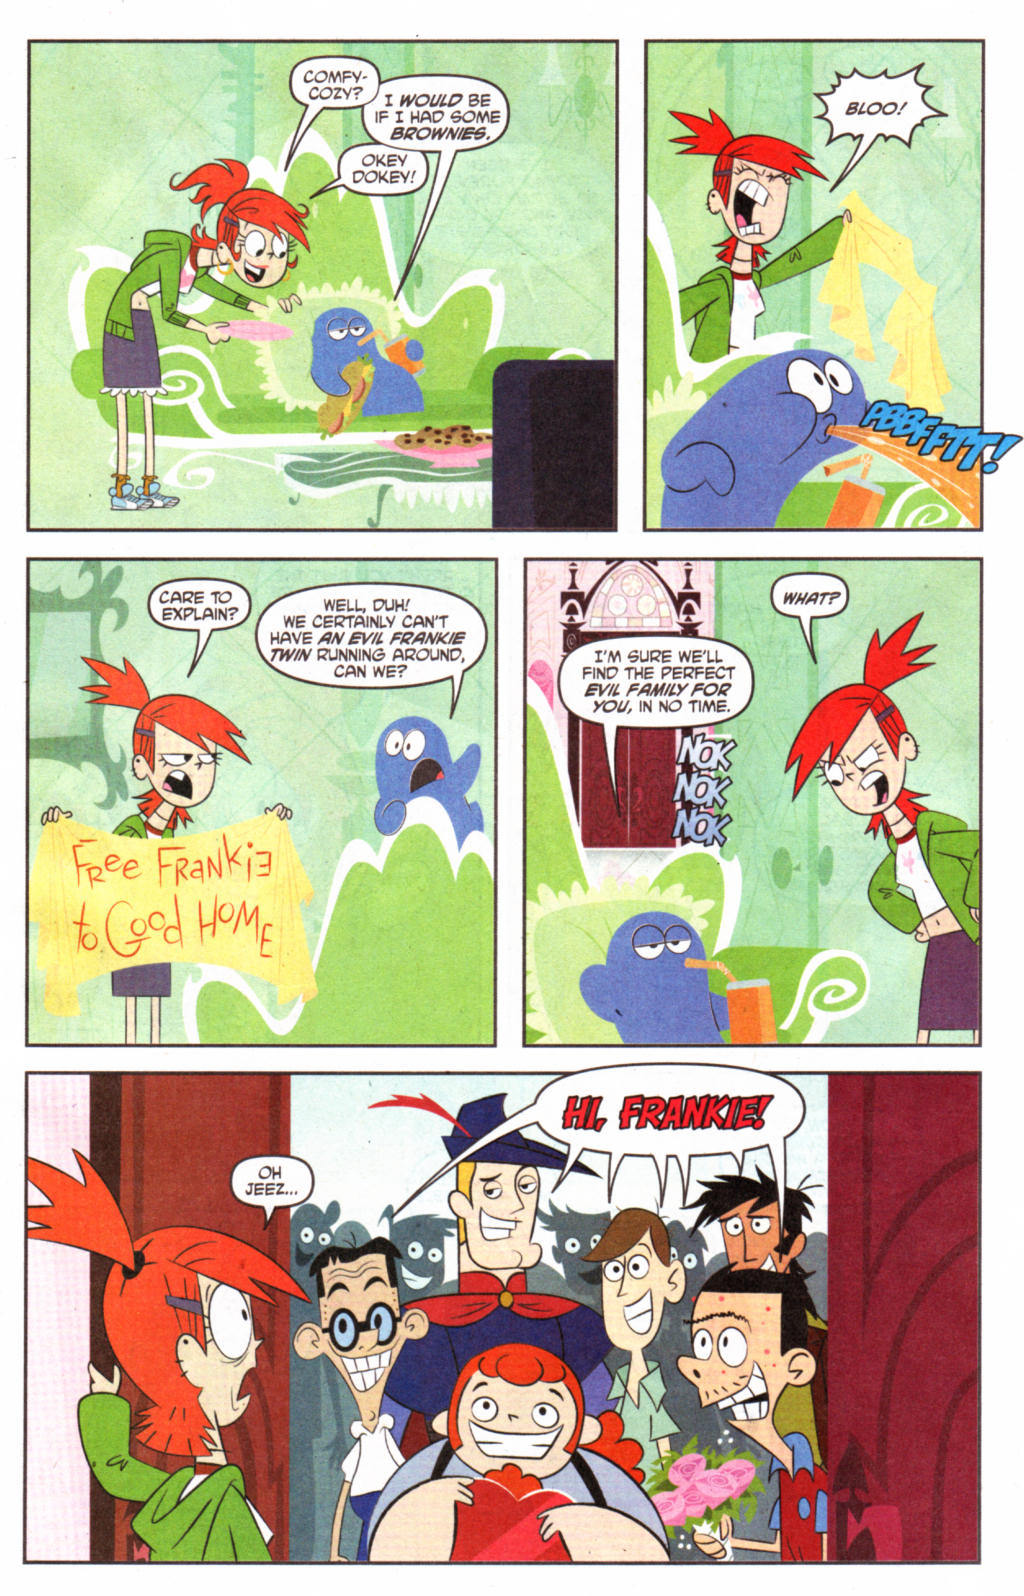 Fosters Home For Imaginary free frankie | foster's home for imaginary friends | know